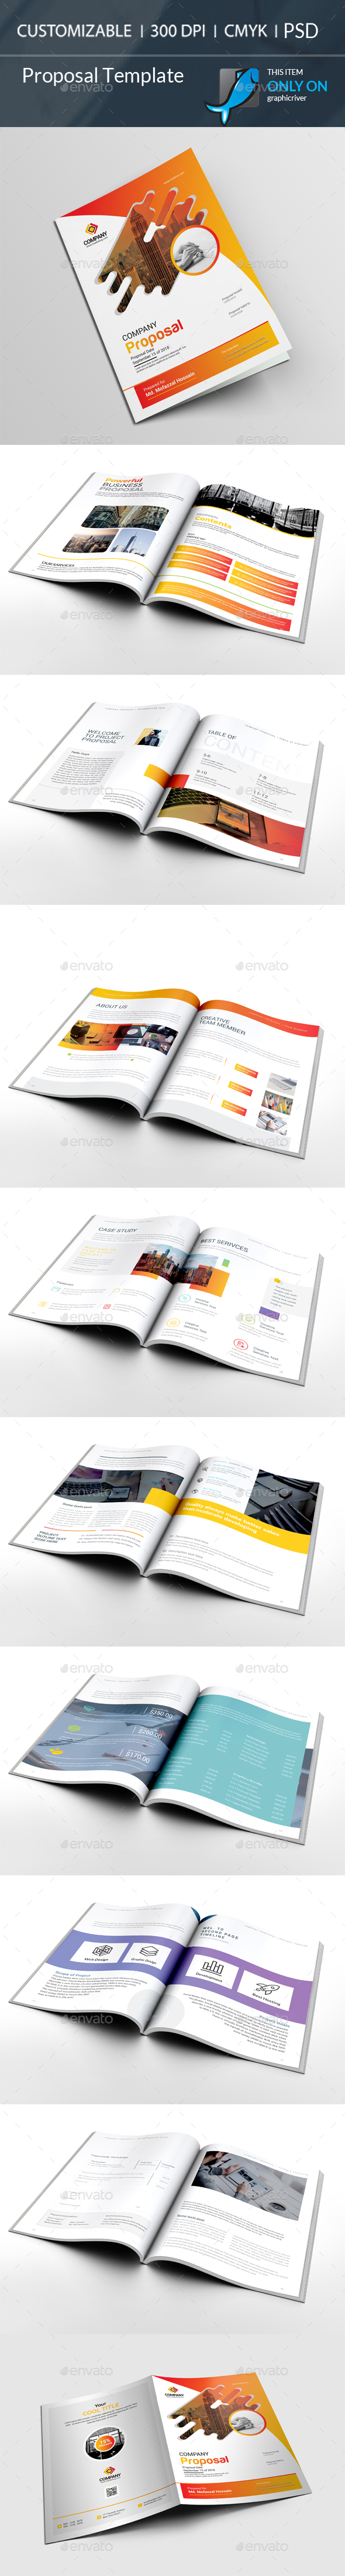 GraphicRiver Proposal Template 21154661